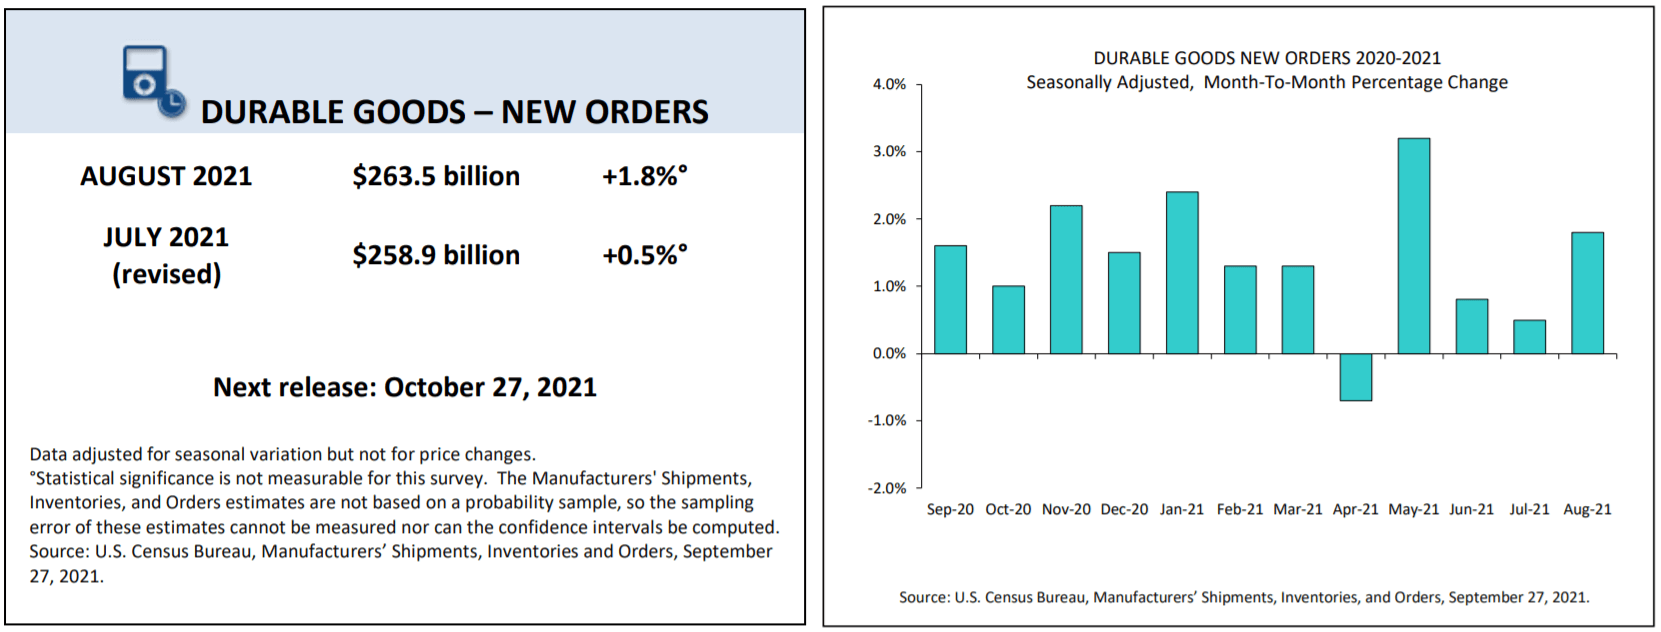 Durable goods new orders 2020-2021, seasonally adjusted month-to-month percentage change as of September 27, 2021